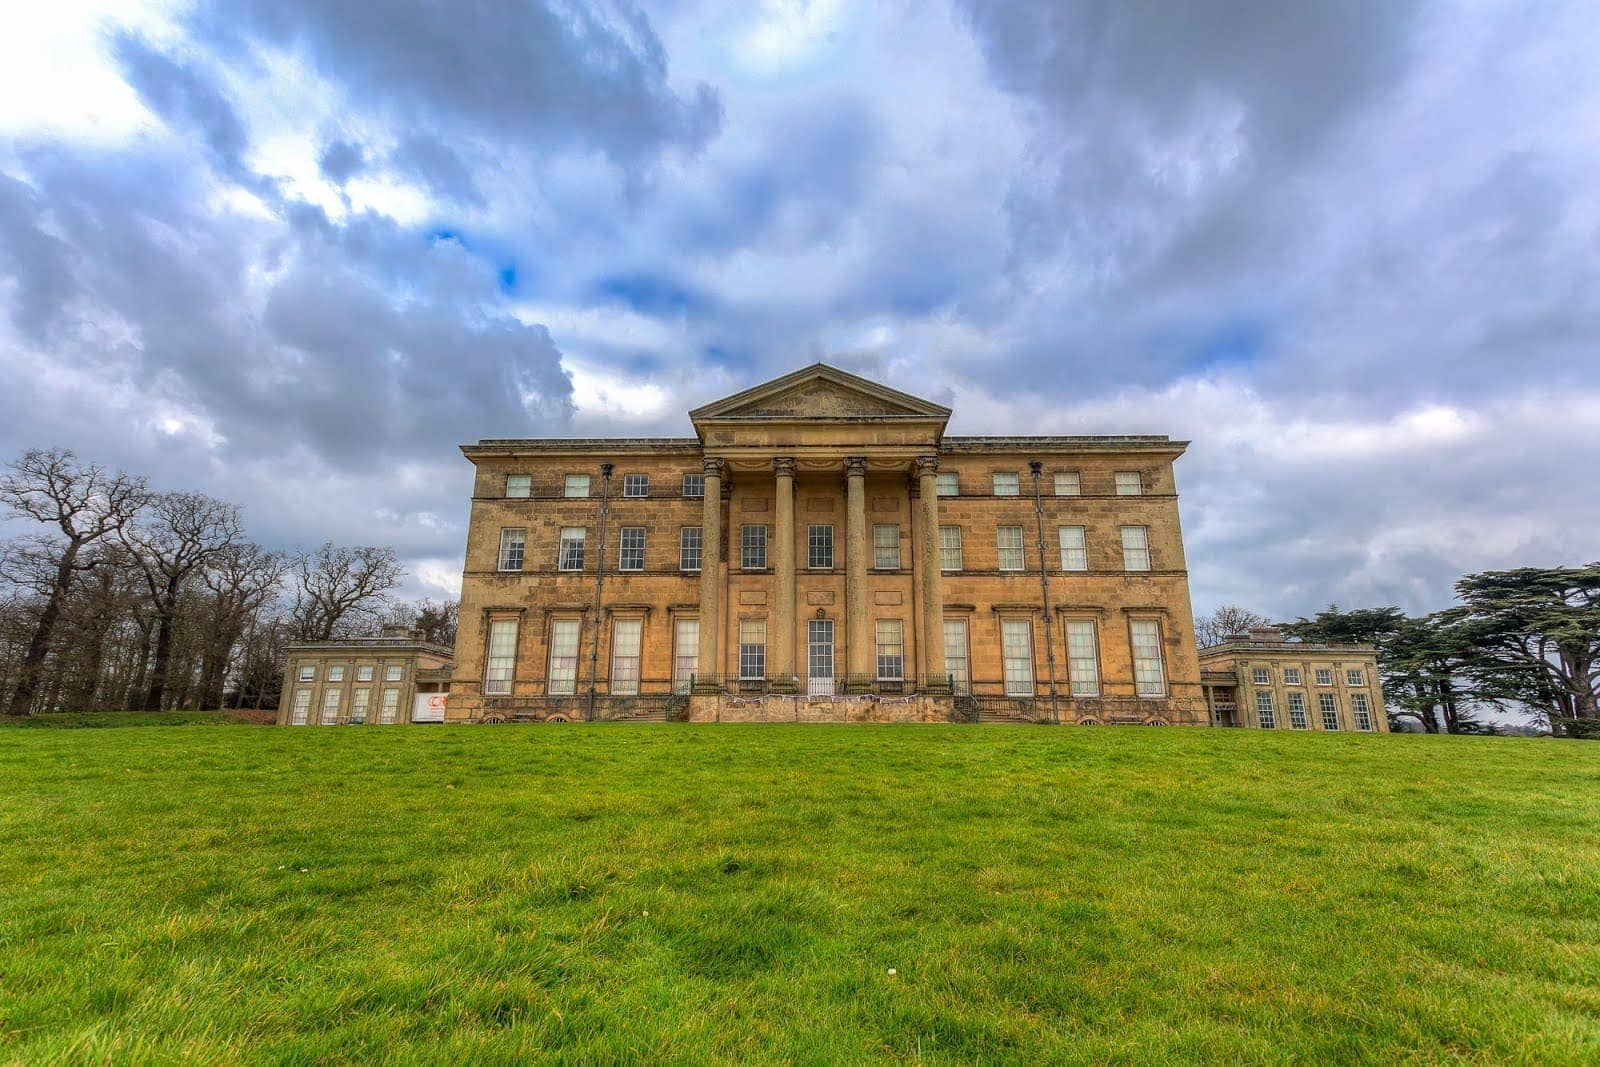 Attingham Hall front view by Laurence Norah